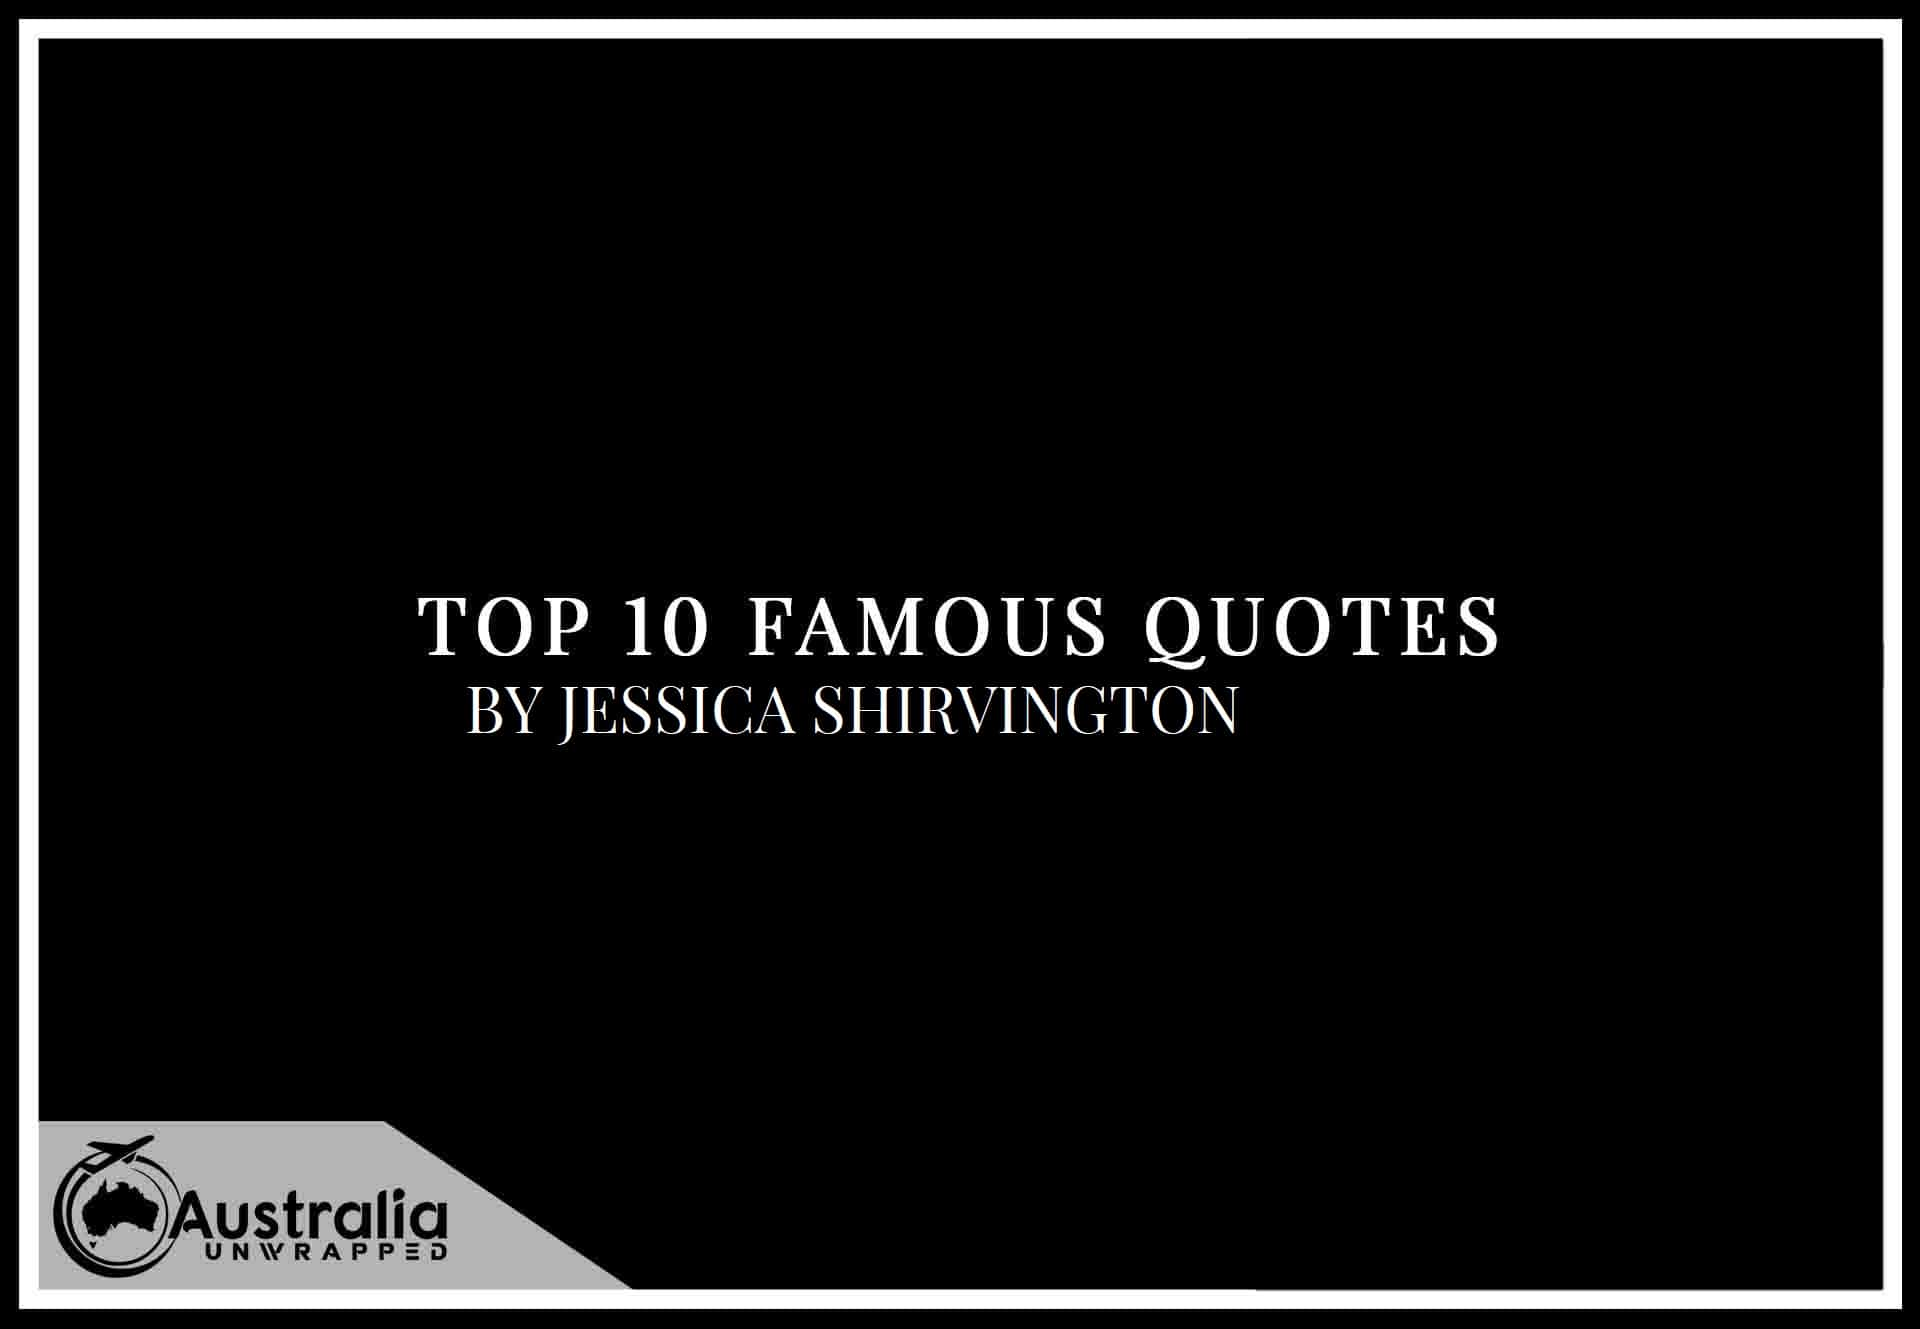 Top 10 Famous Quotes by Author Jessica Shirvington